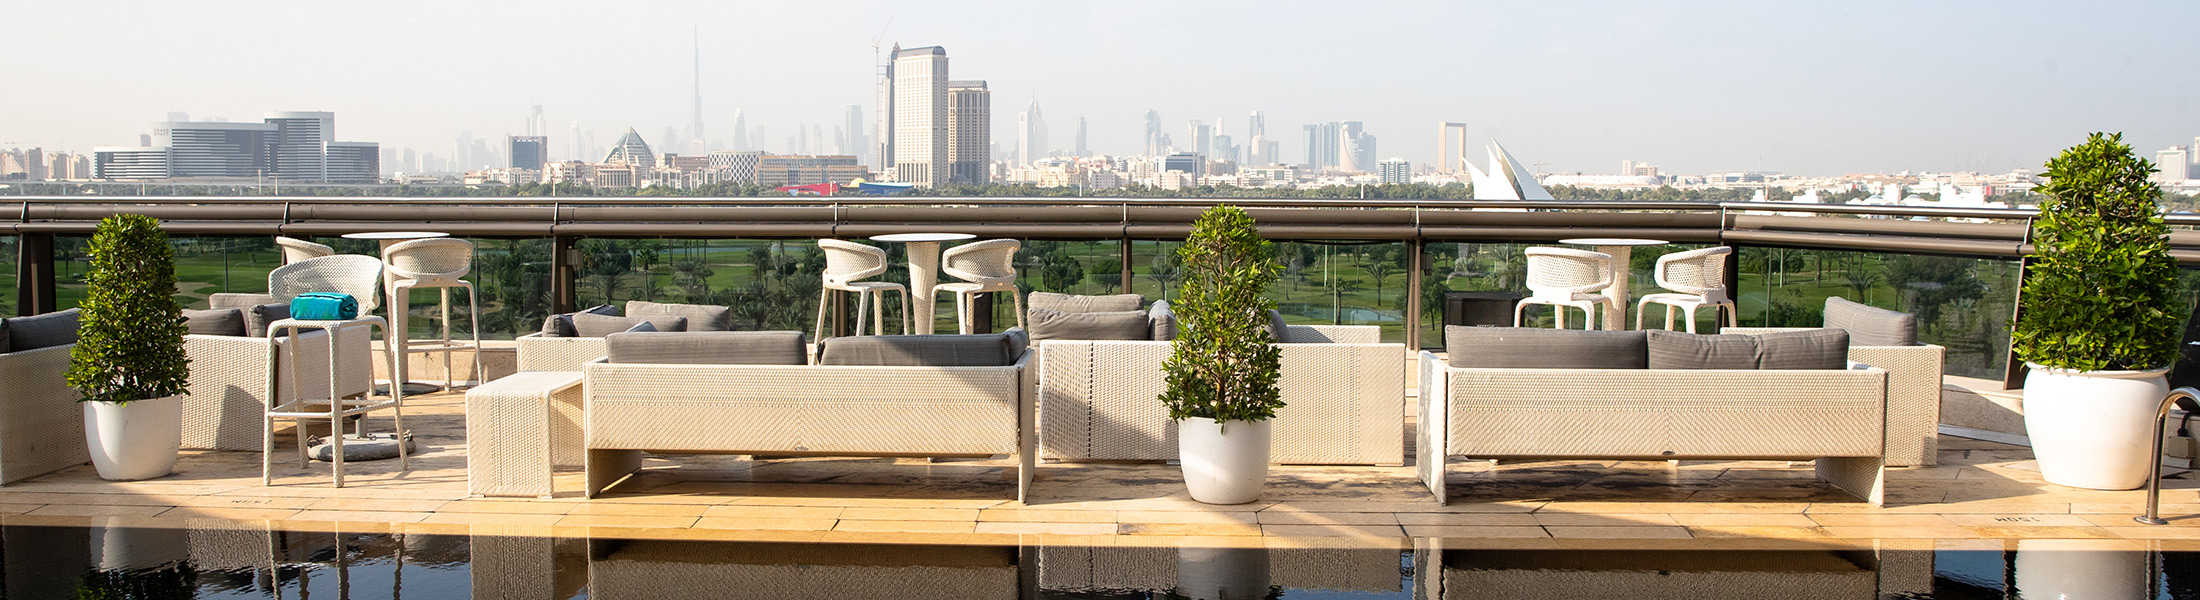 Rooftop pool and lounges at Jumeirah Creekside